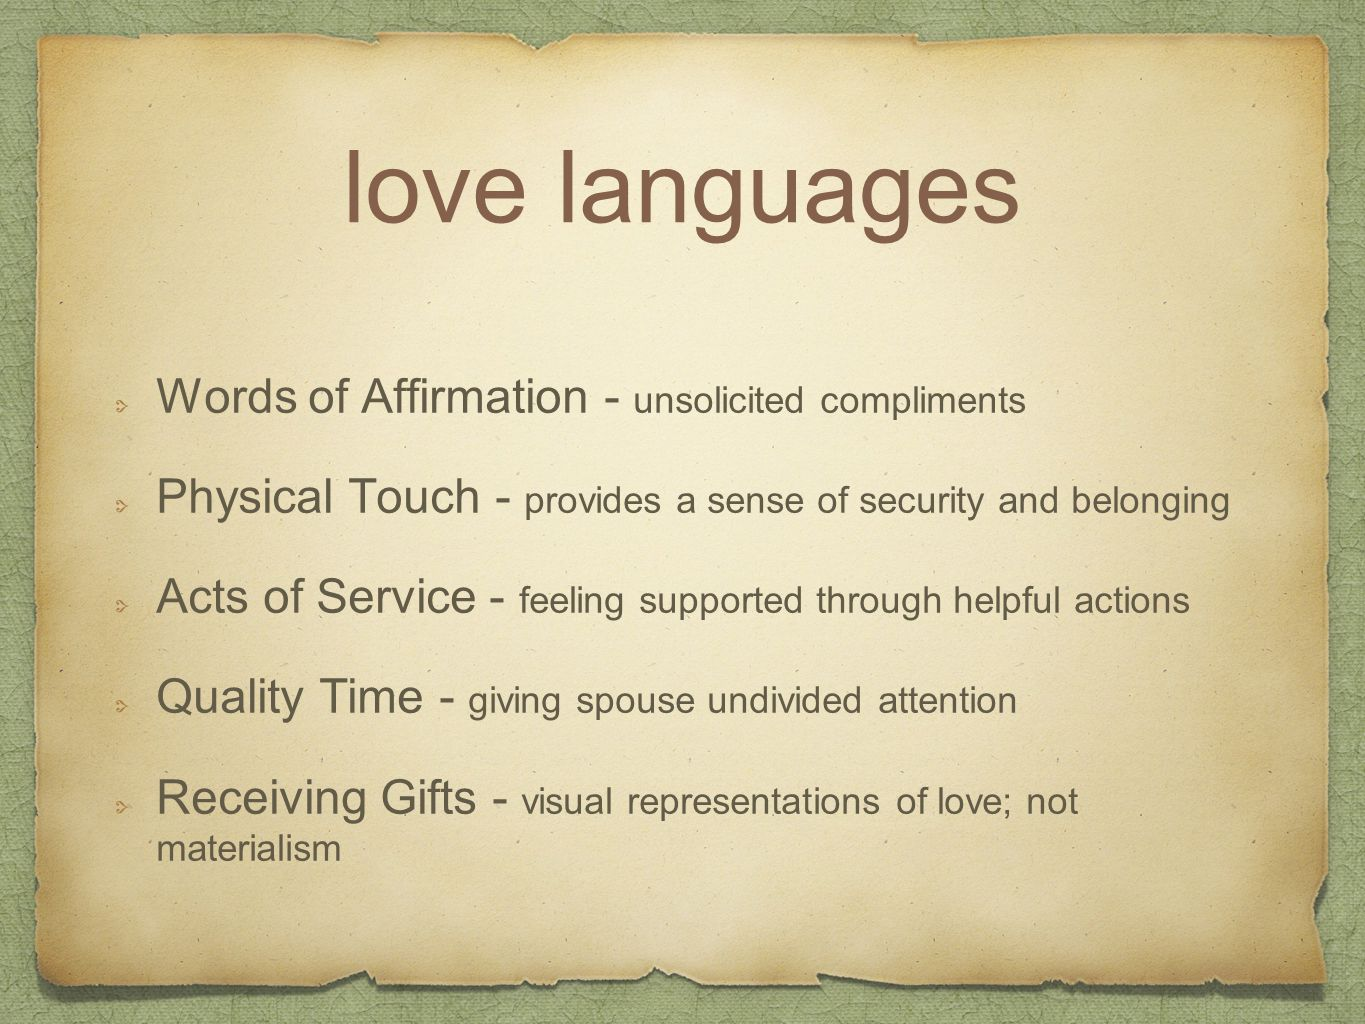 love languages Words of Affirmation - unsolicited compliments Physical Touch - provides a sense of security and belonging Acts of Service - feeling supported through helpful actions Quality Time - giving spouse undivided attention Receiving Gifts - visual representations of love; not materialism